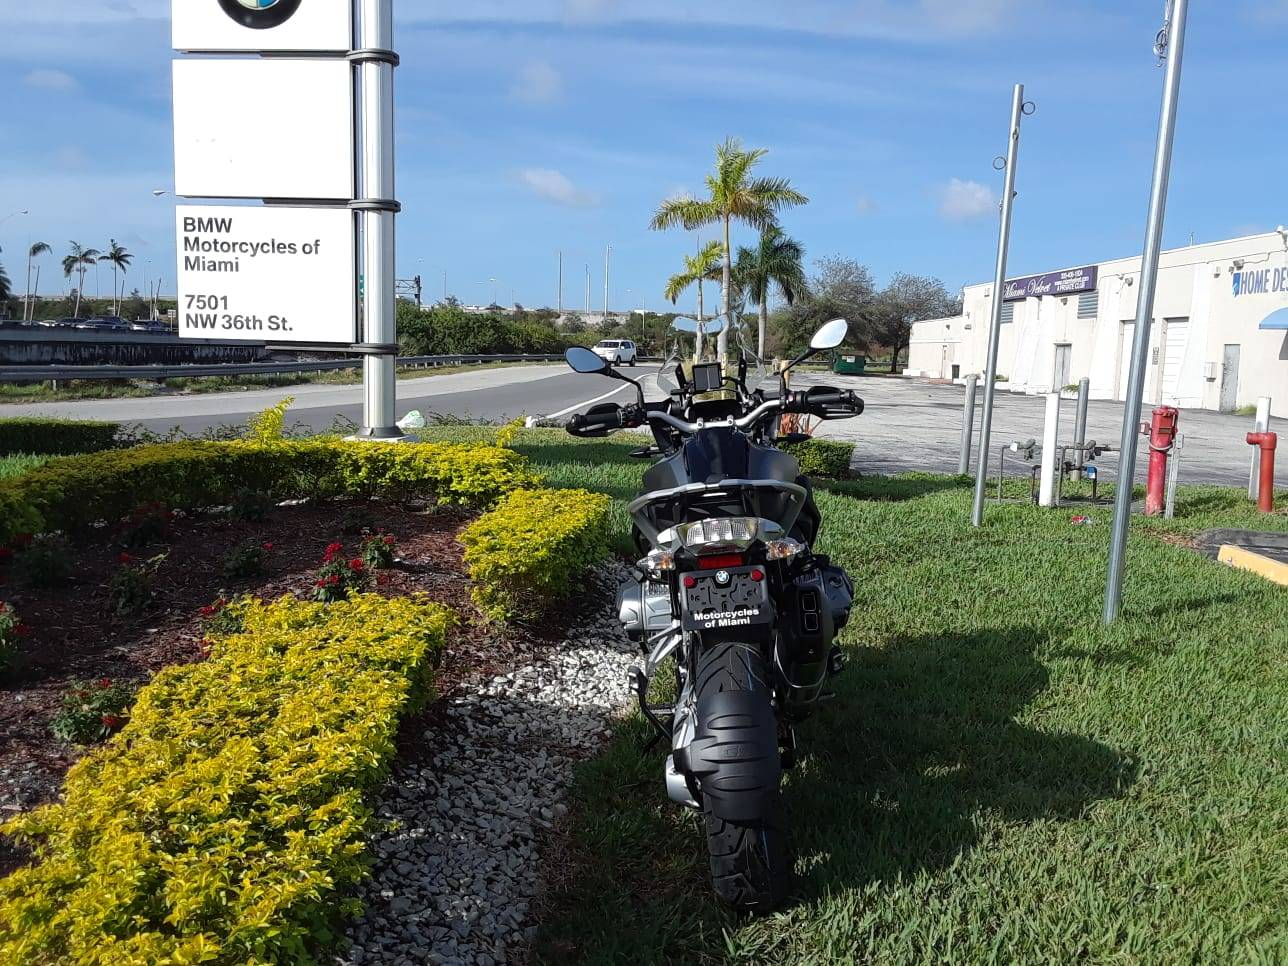 New 2019 BMW R 1250 GS for sale, New BMW for sale R 1250GS, new BMW 1250GS, R1250GS, GS. BMW Motorcycles of Miami, Motorcycles of Miami Motorcycles Miami - Photo 20